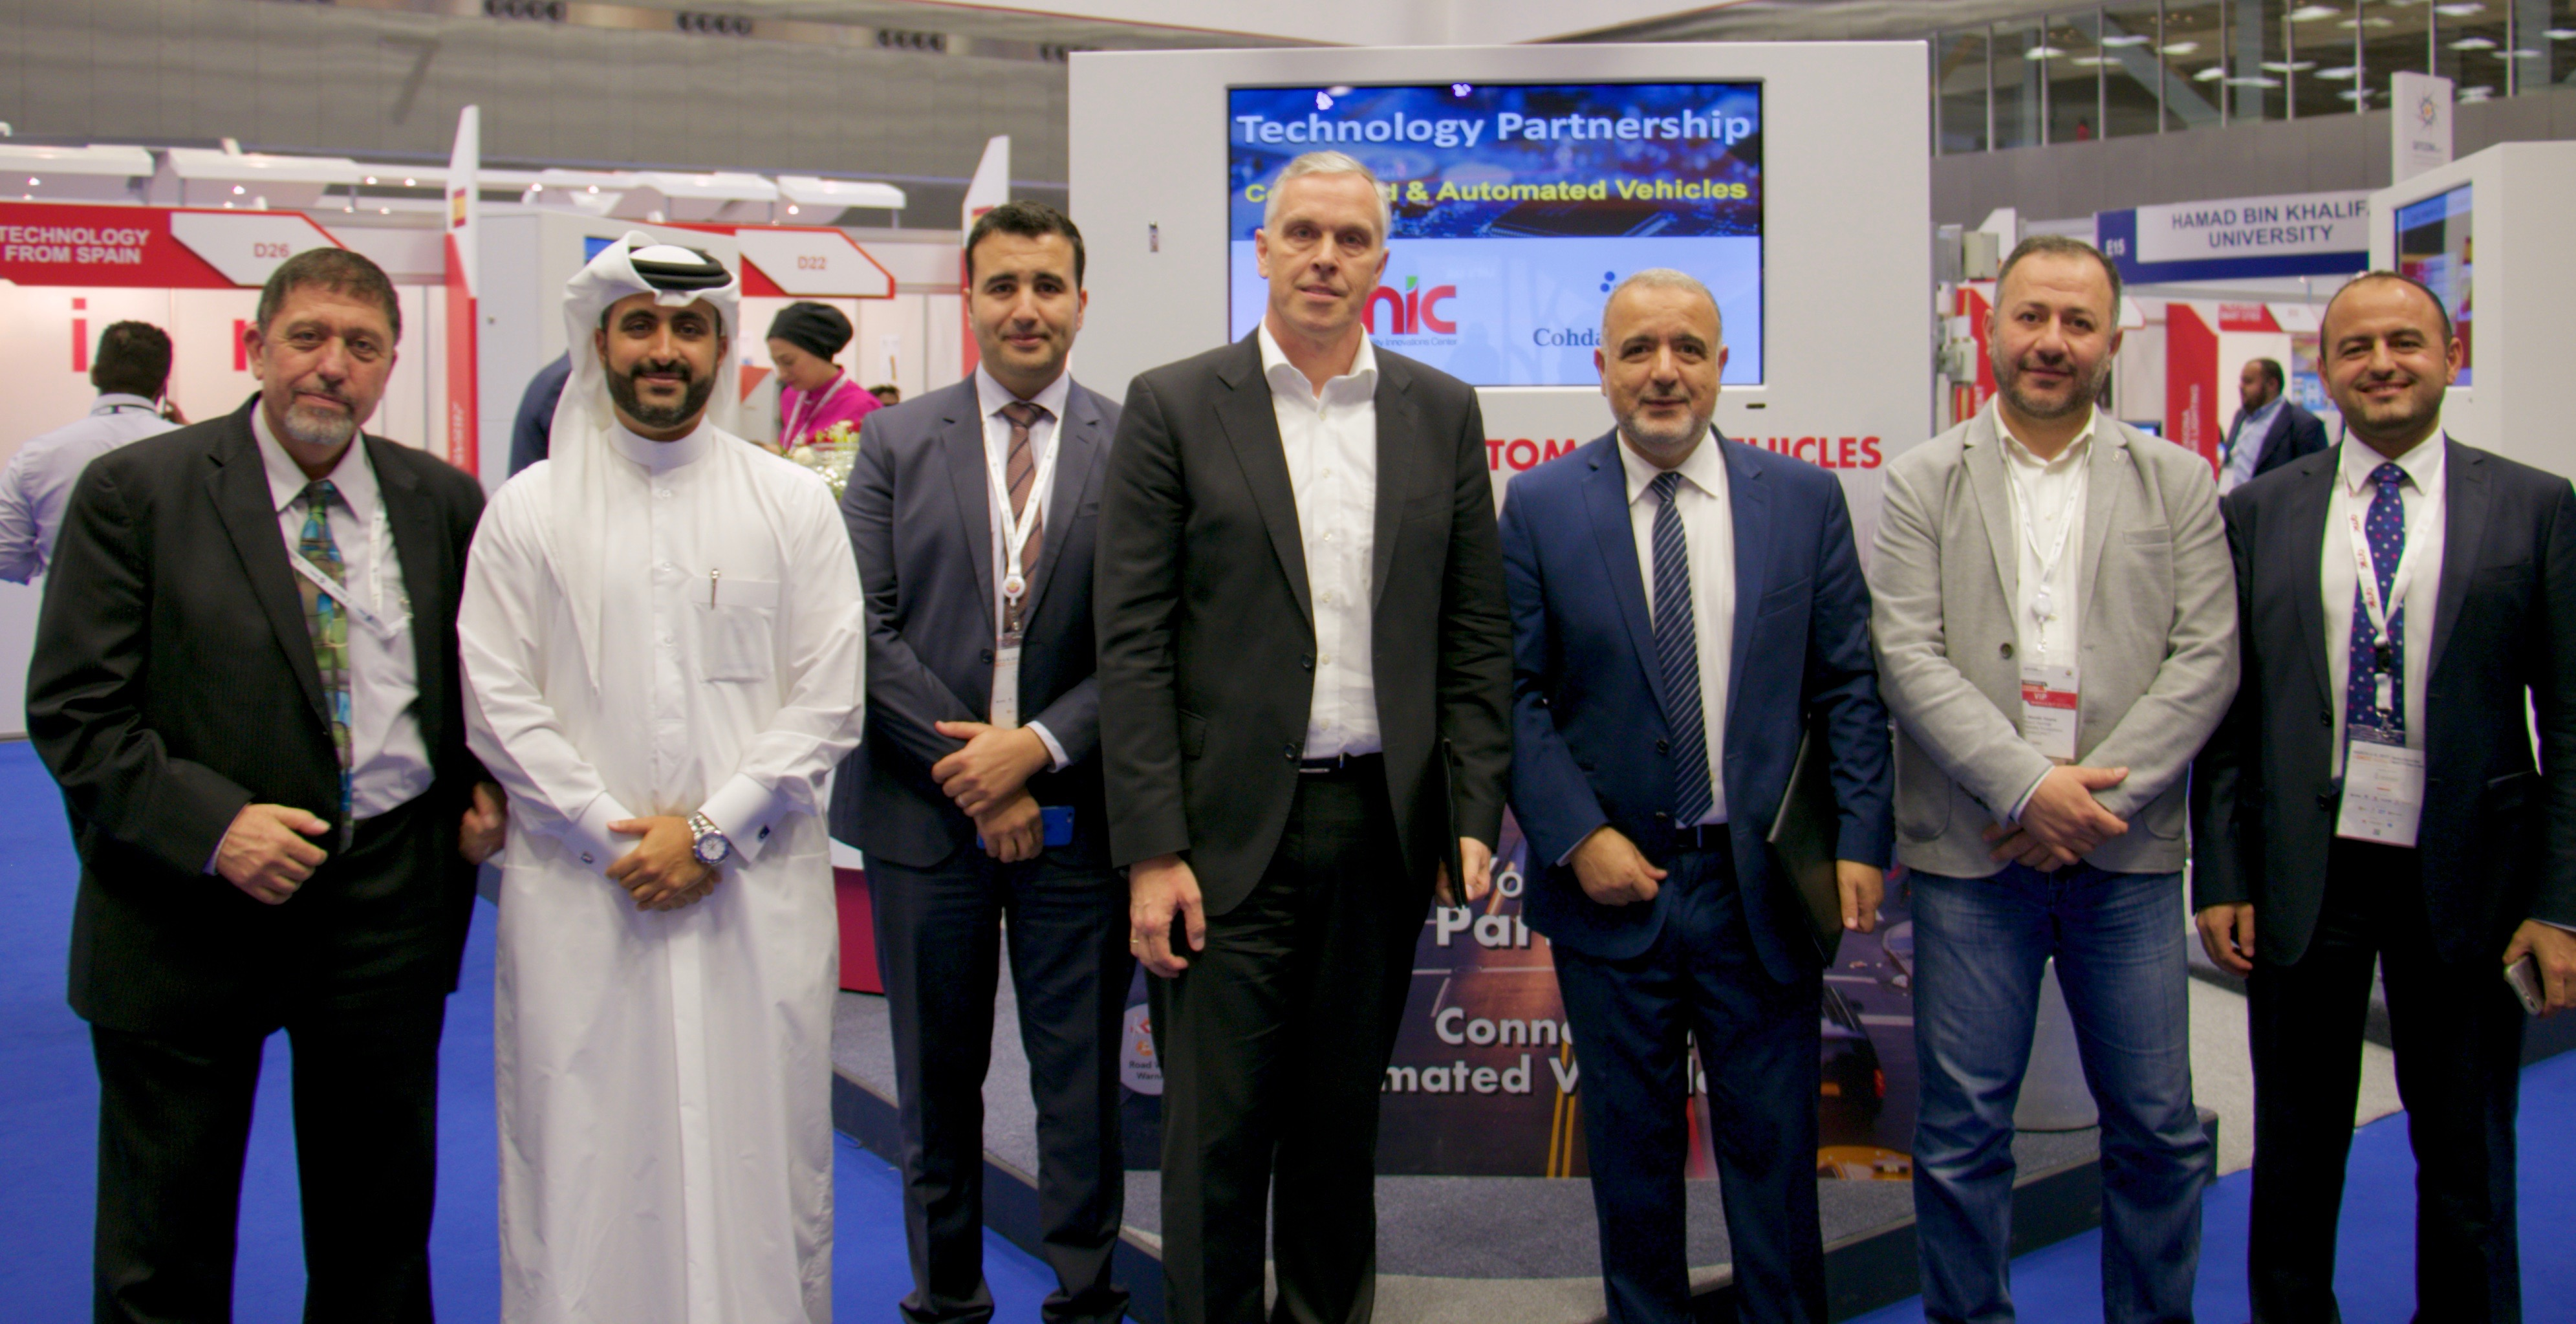 QMIC Signs an International Technology Partnership with Cohda Wireless on Connected and Automated Vehicles during the QITCOM Event